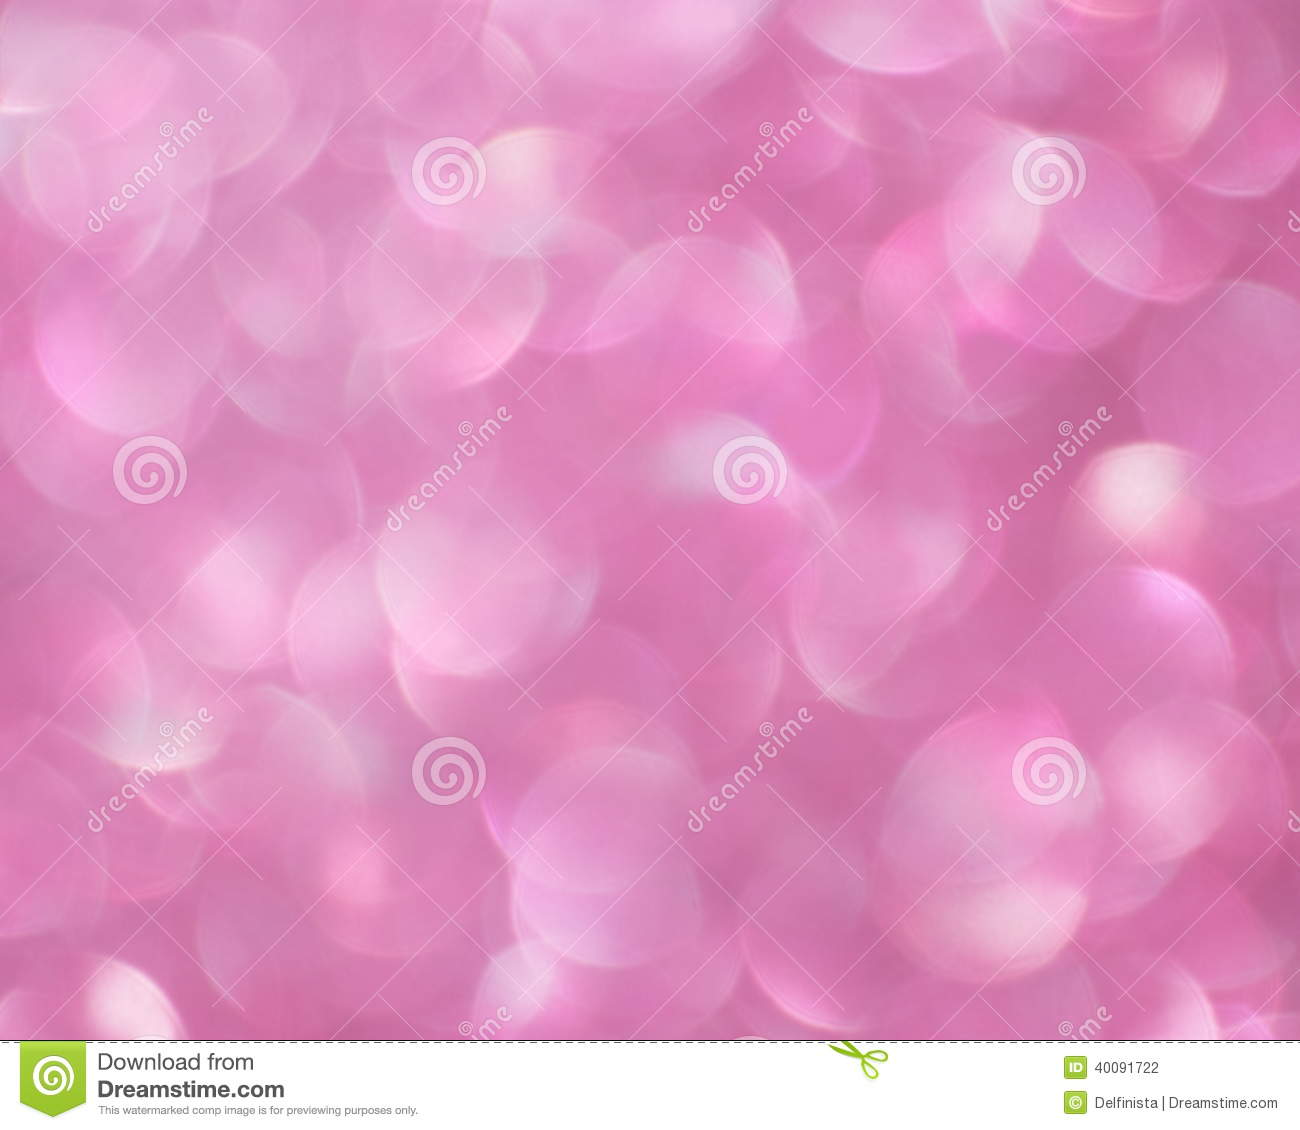 Pink background : Mothers Day Blur Stock Photos